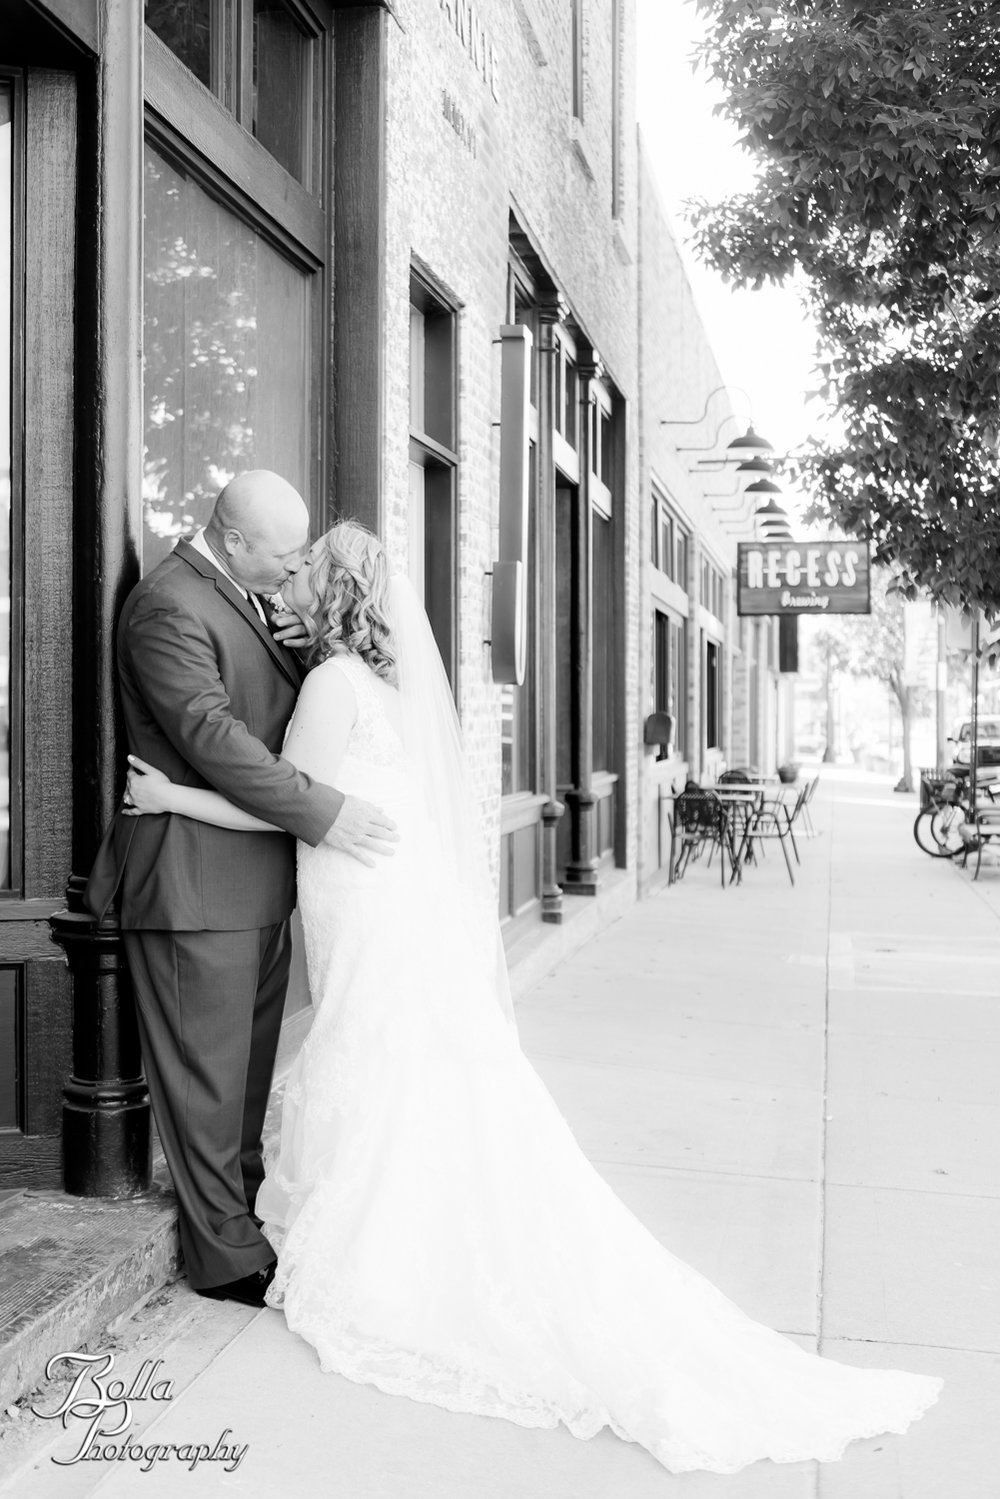 Bolla_Photography_St_Louis_wedding_photographer_Wildey_Theater_Edwardsville-0269.jpg